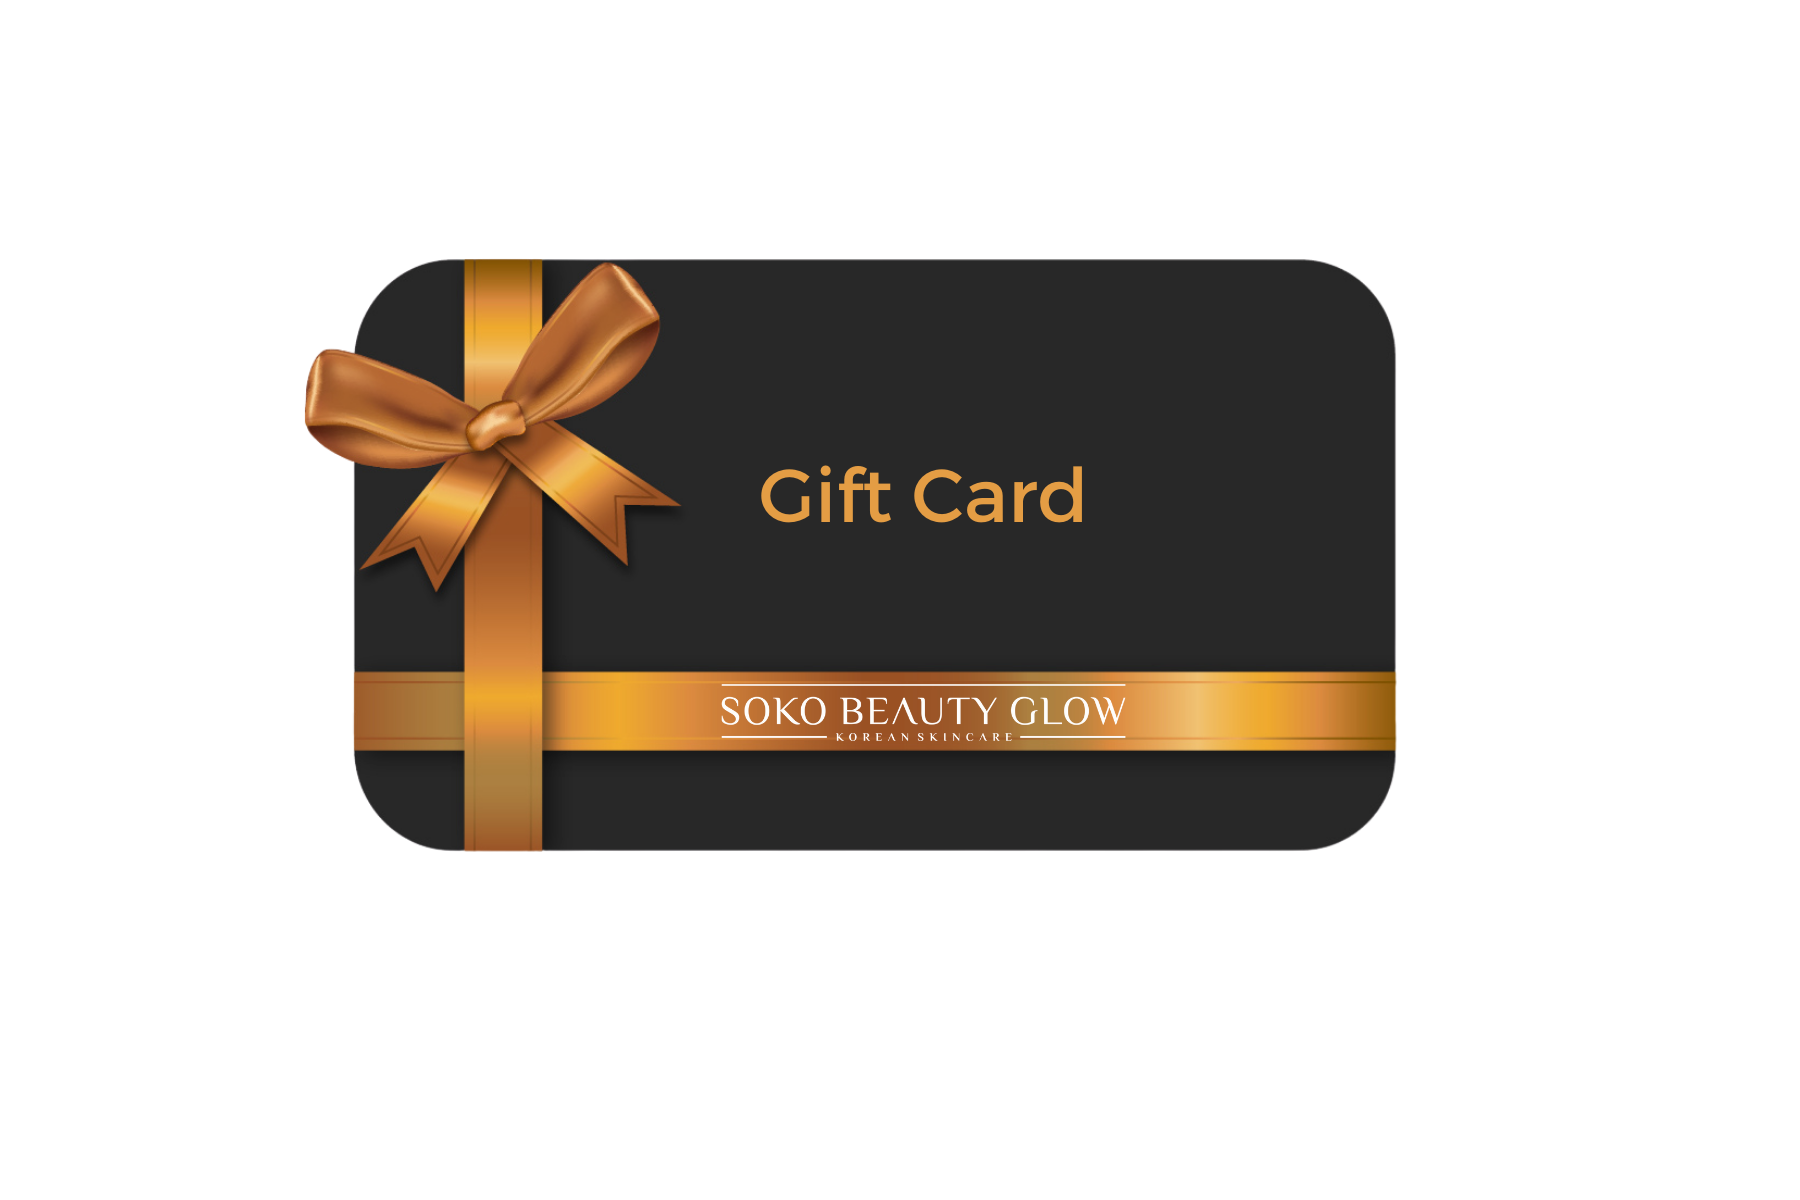 Soko Beauty Glow Gift Card